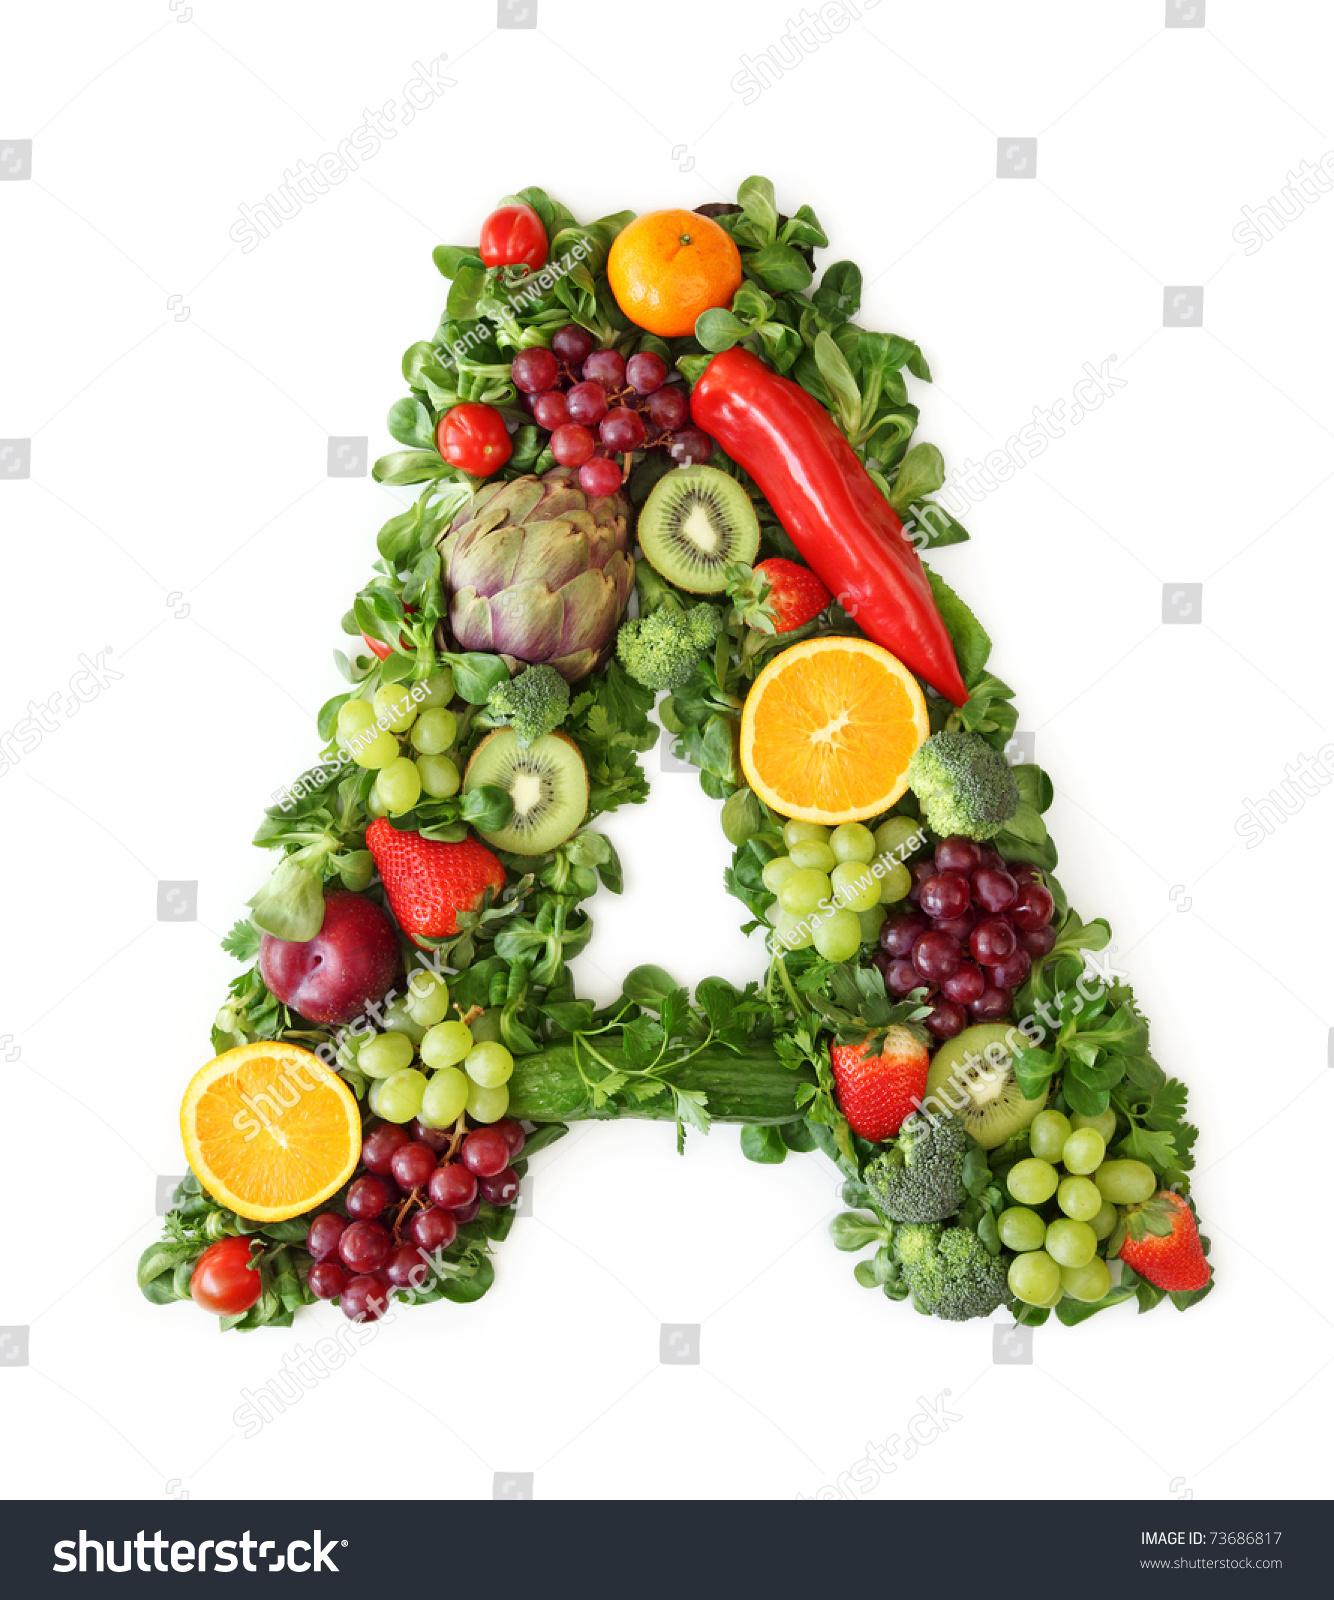 least healthy fruits is cucumber a fruit or vegetable